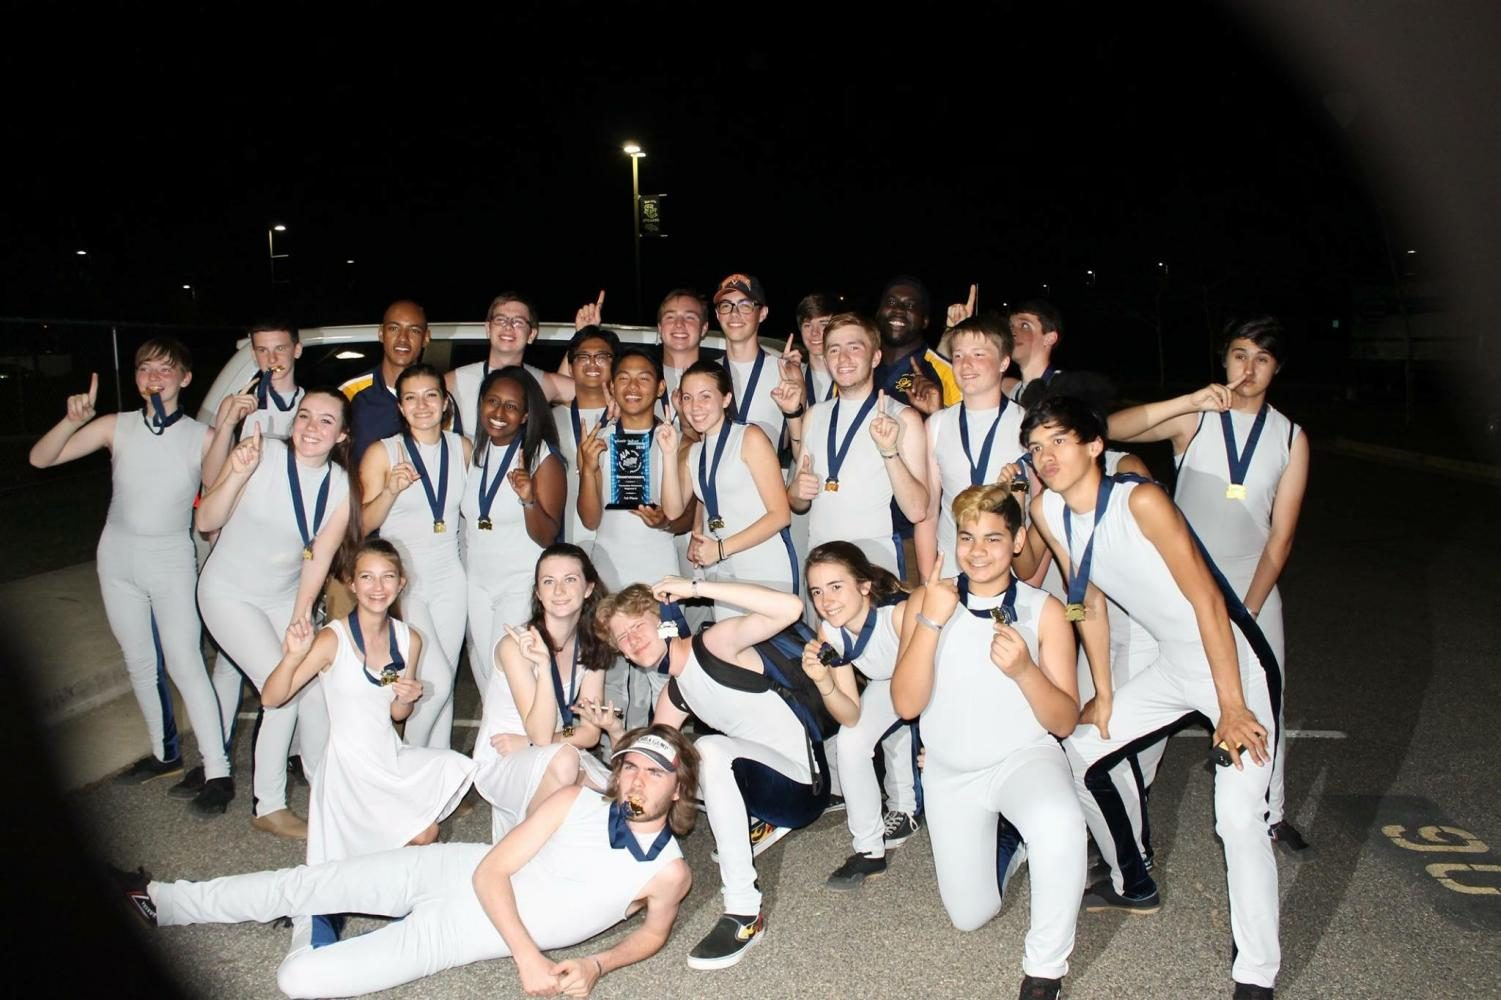 Indoor drumline celebrates their first place win with a trophy and gold medals for all team members in the South County High parking lot.